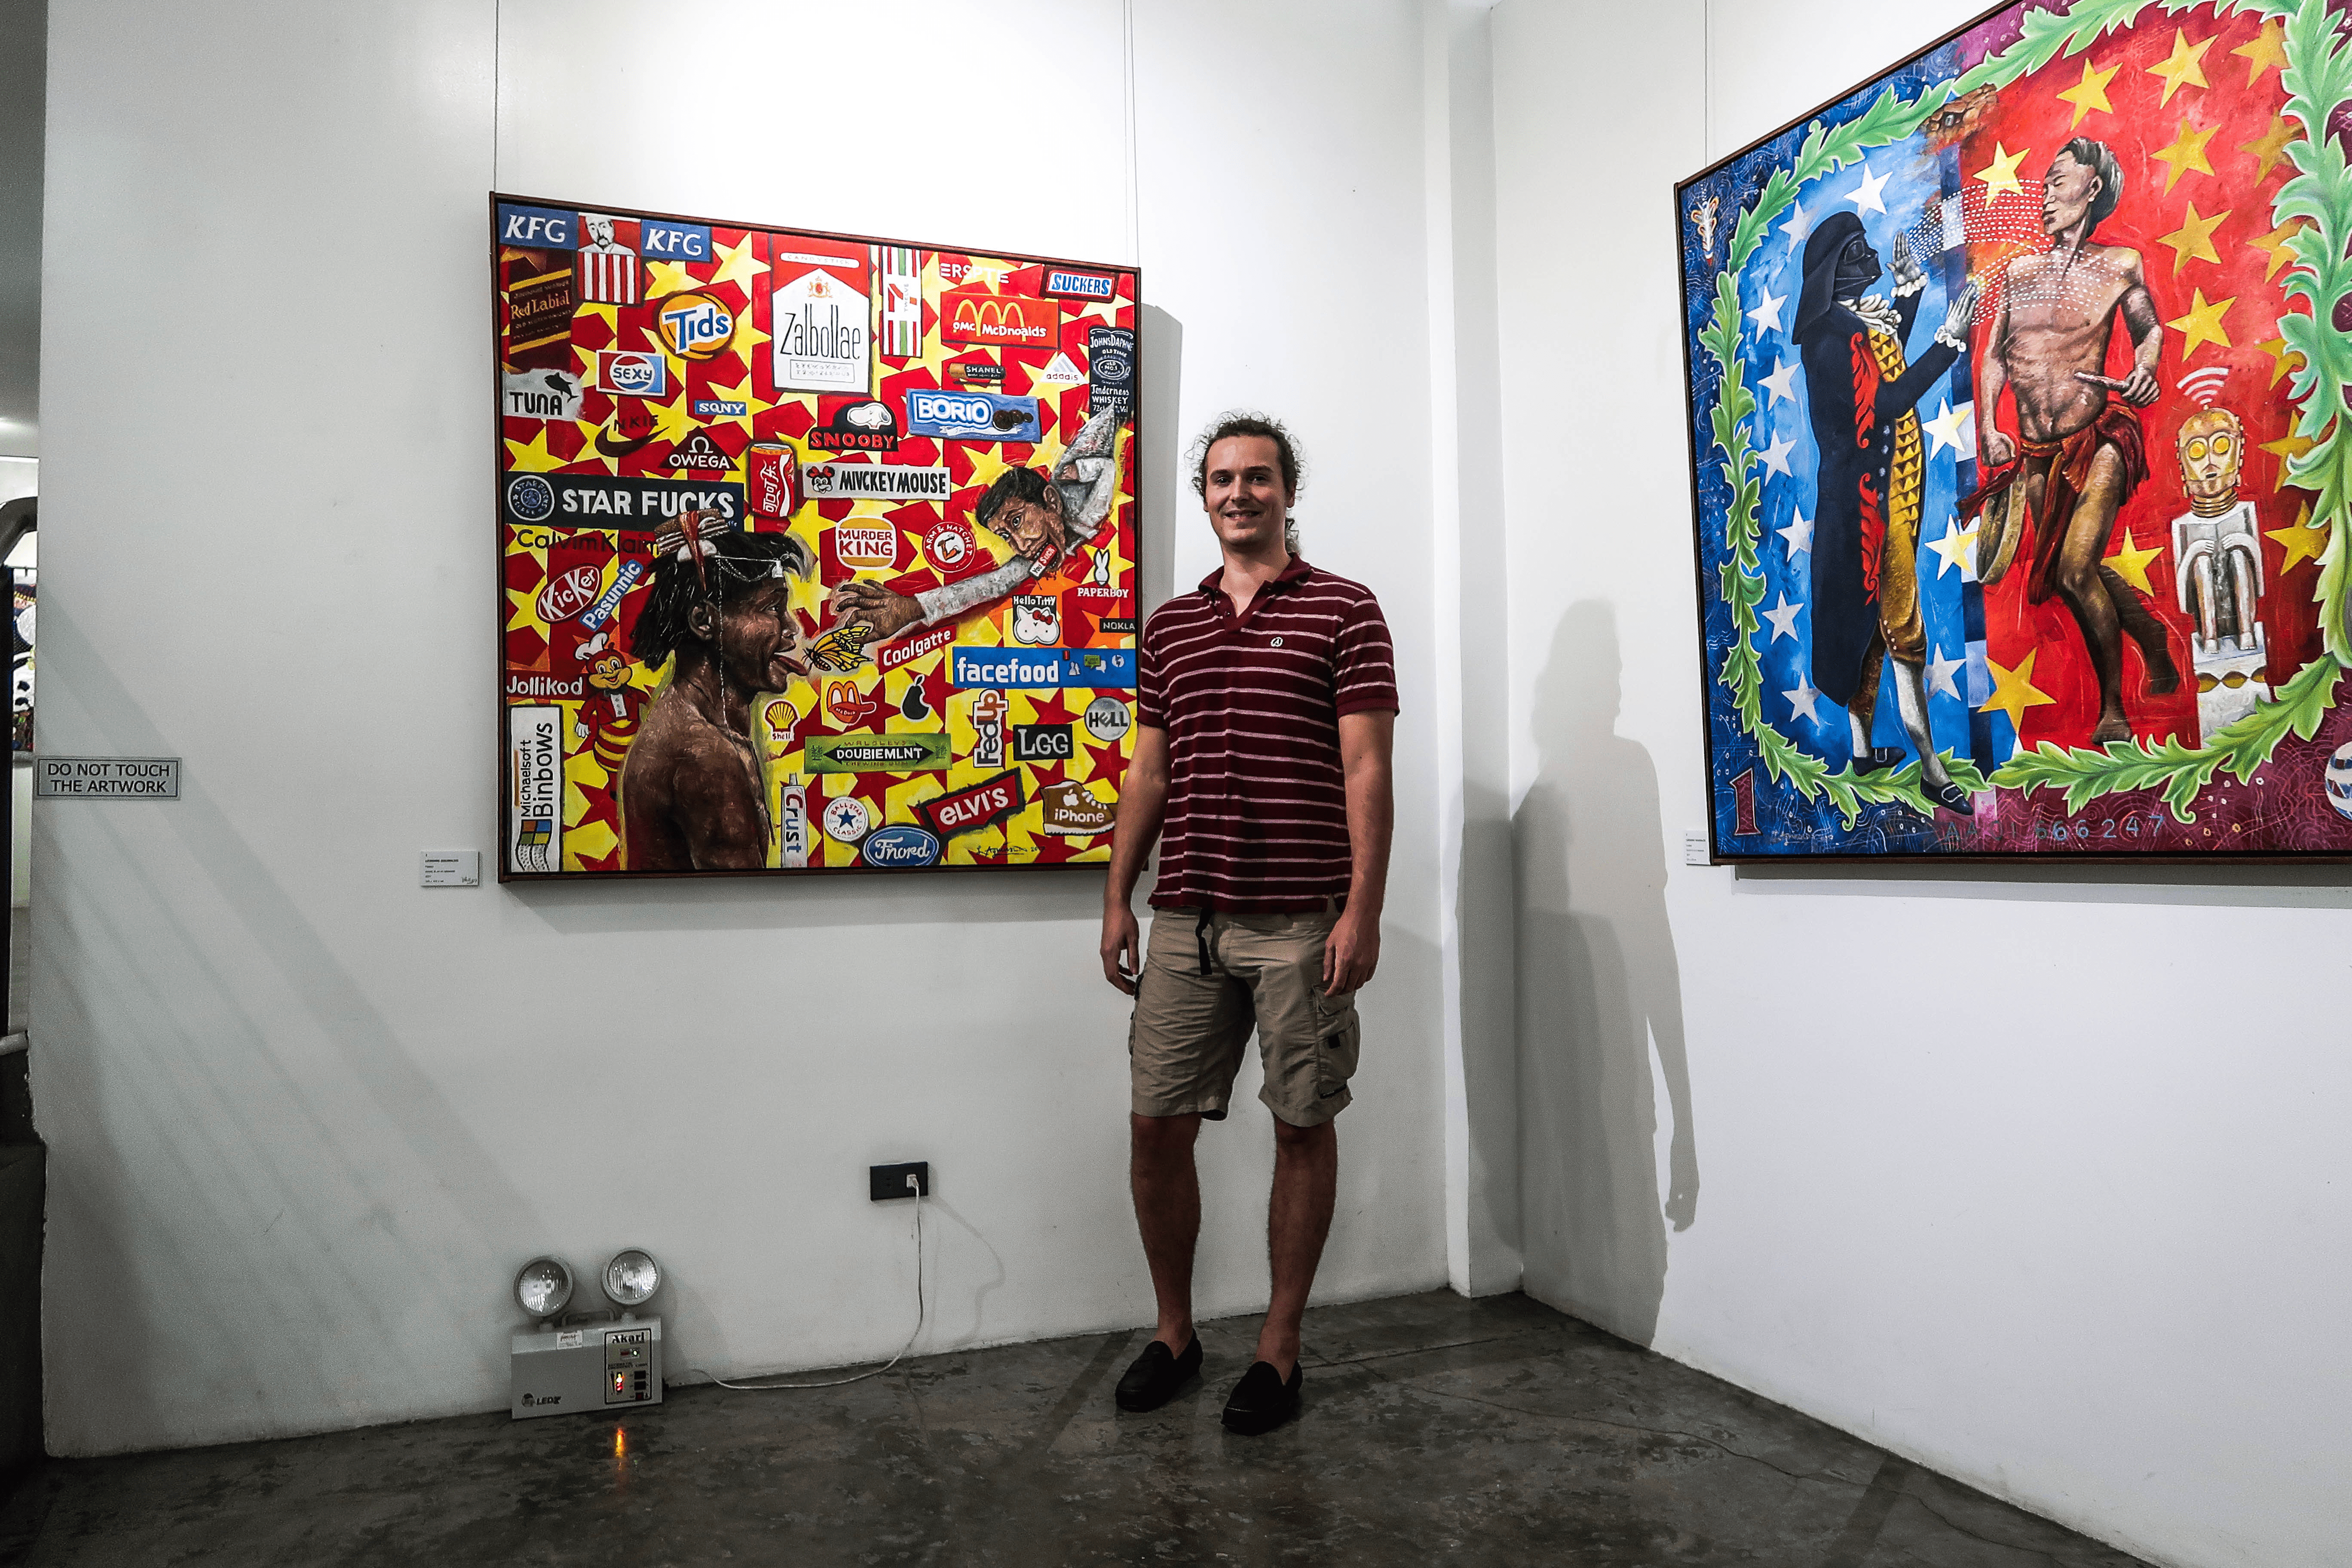 lennythroughparadise posing in the bencab museum baguio city philippines in front of an artwork